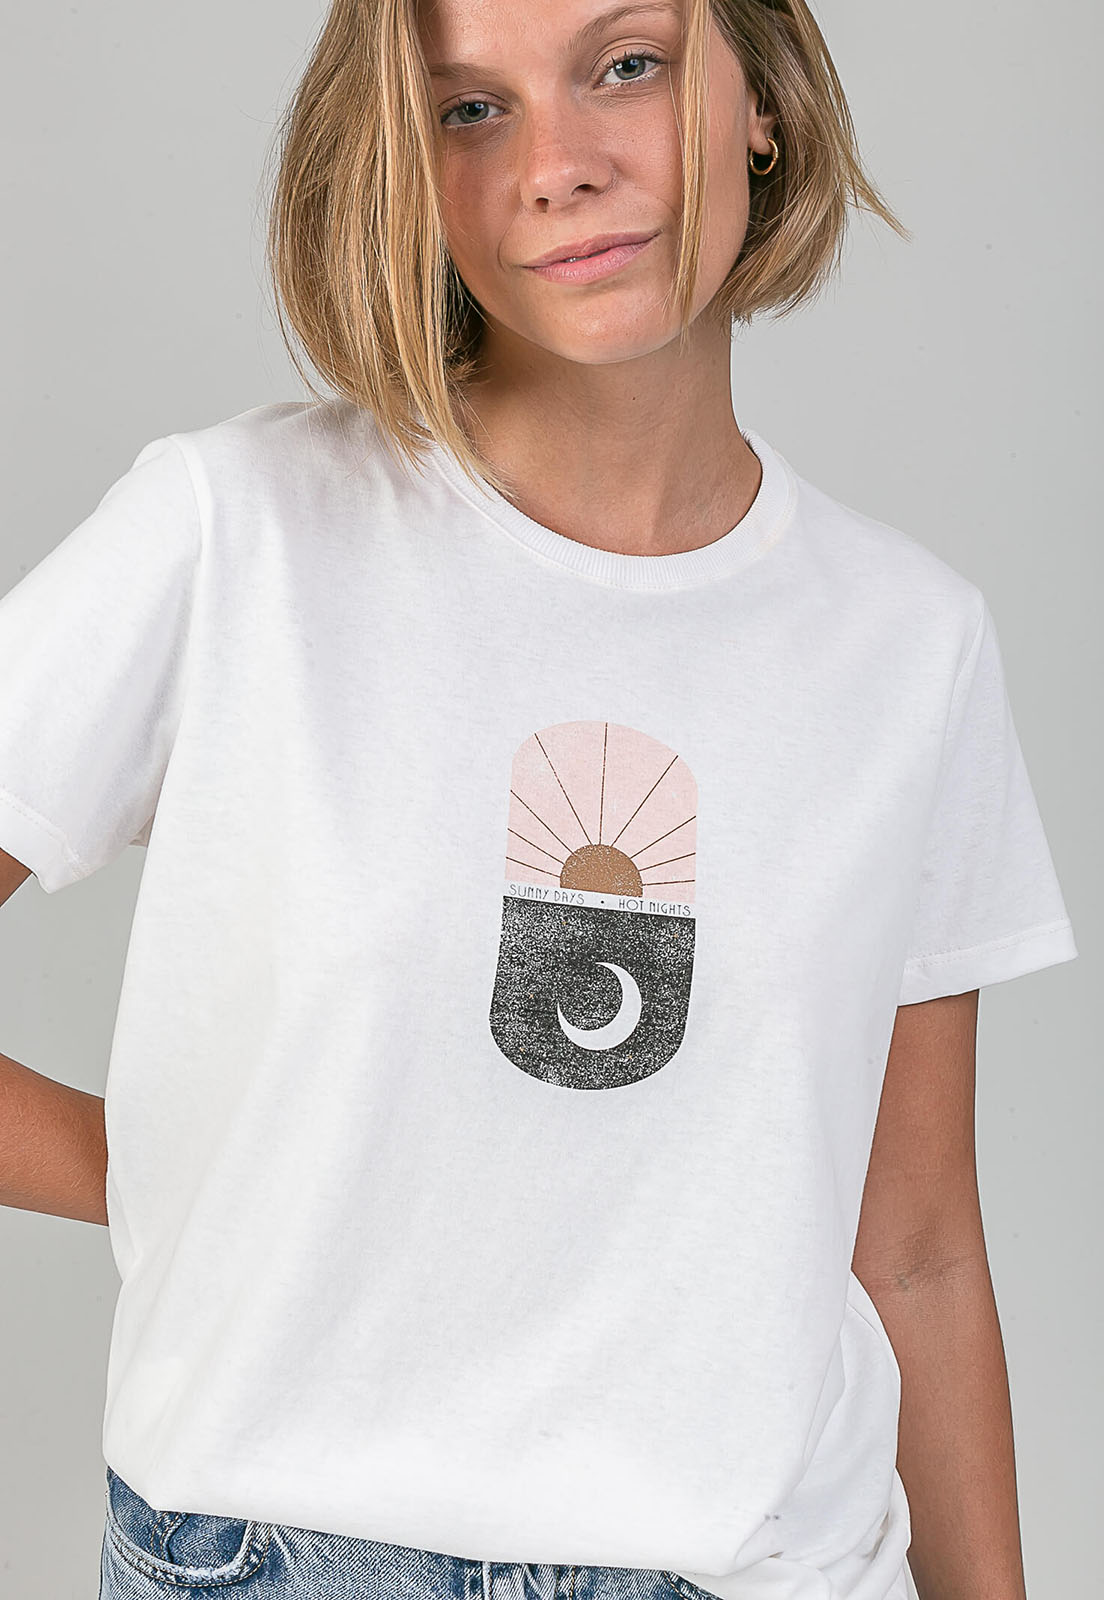 T-shirt Hot Nights melty  - melty surf & Co.